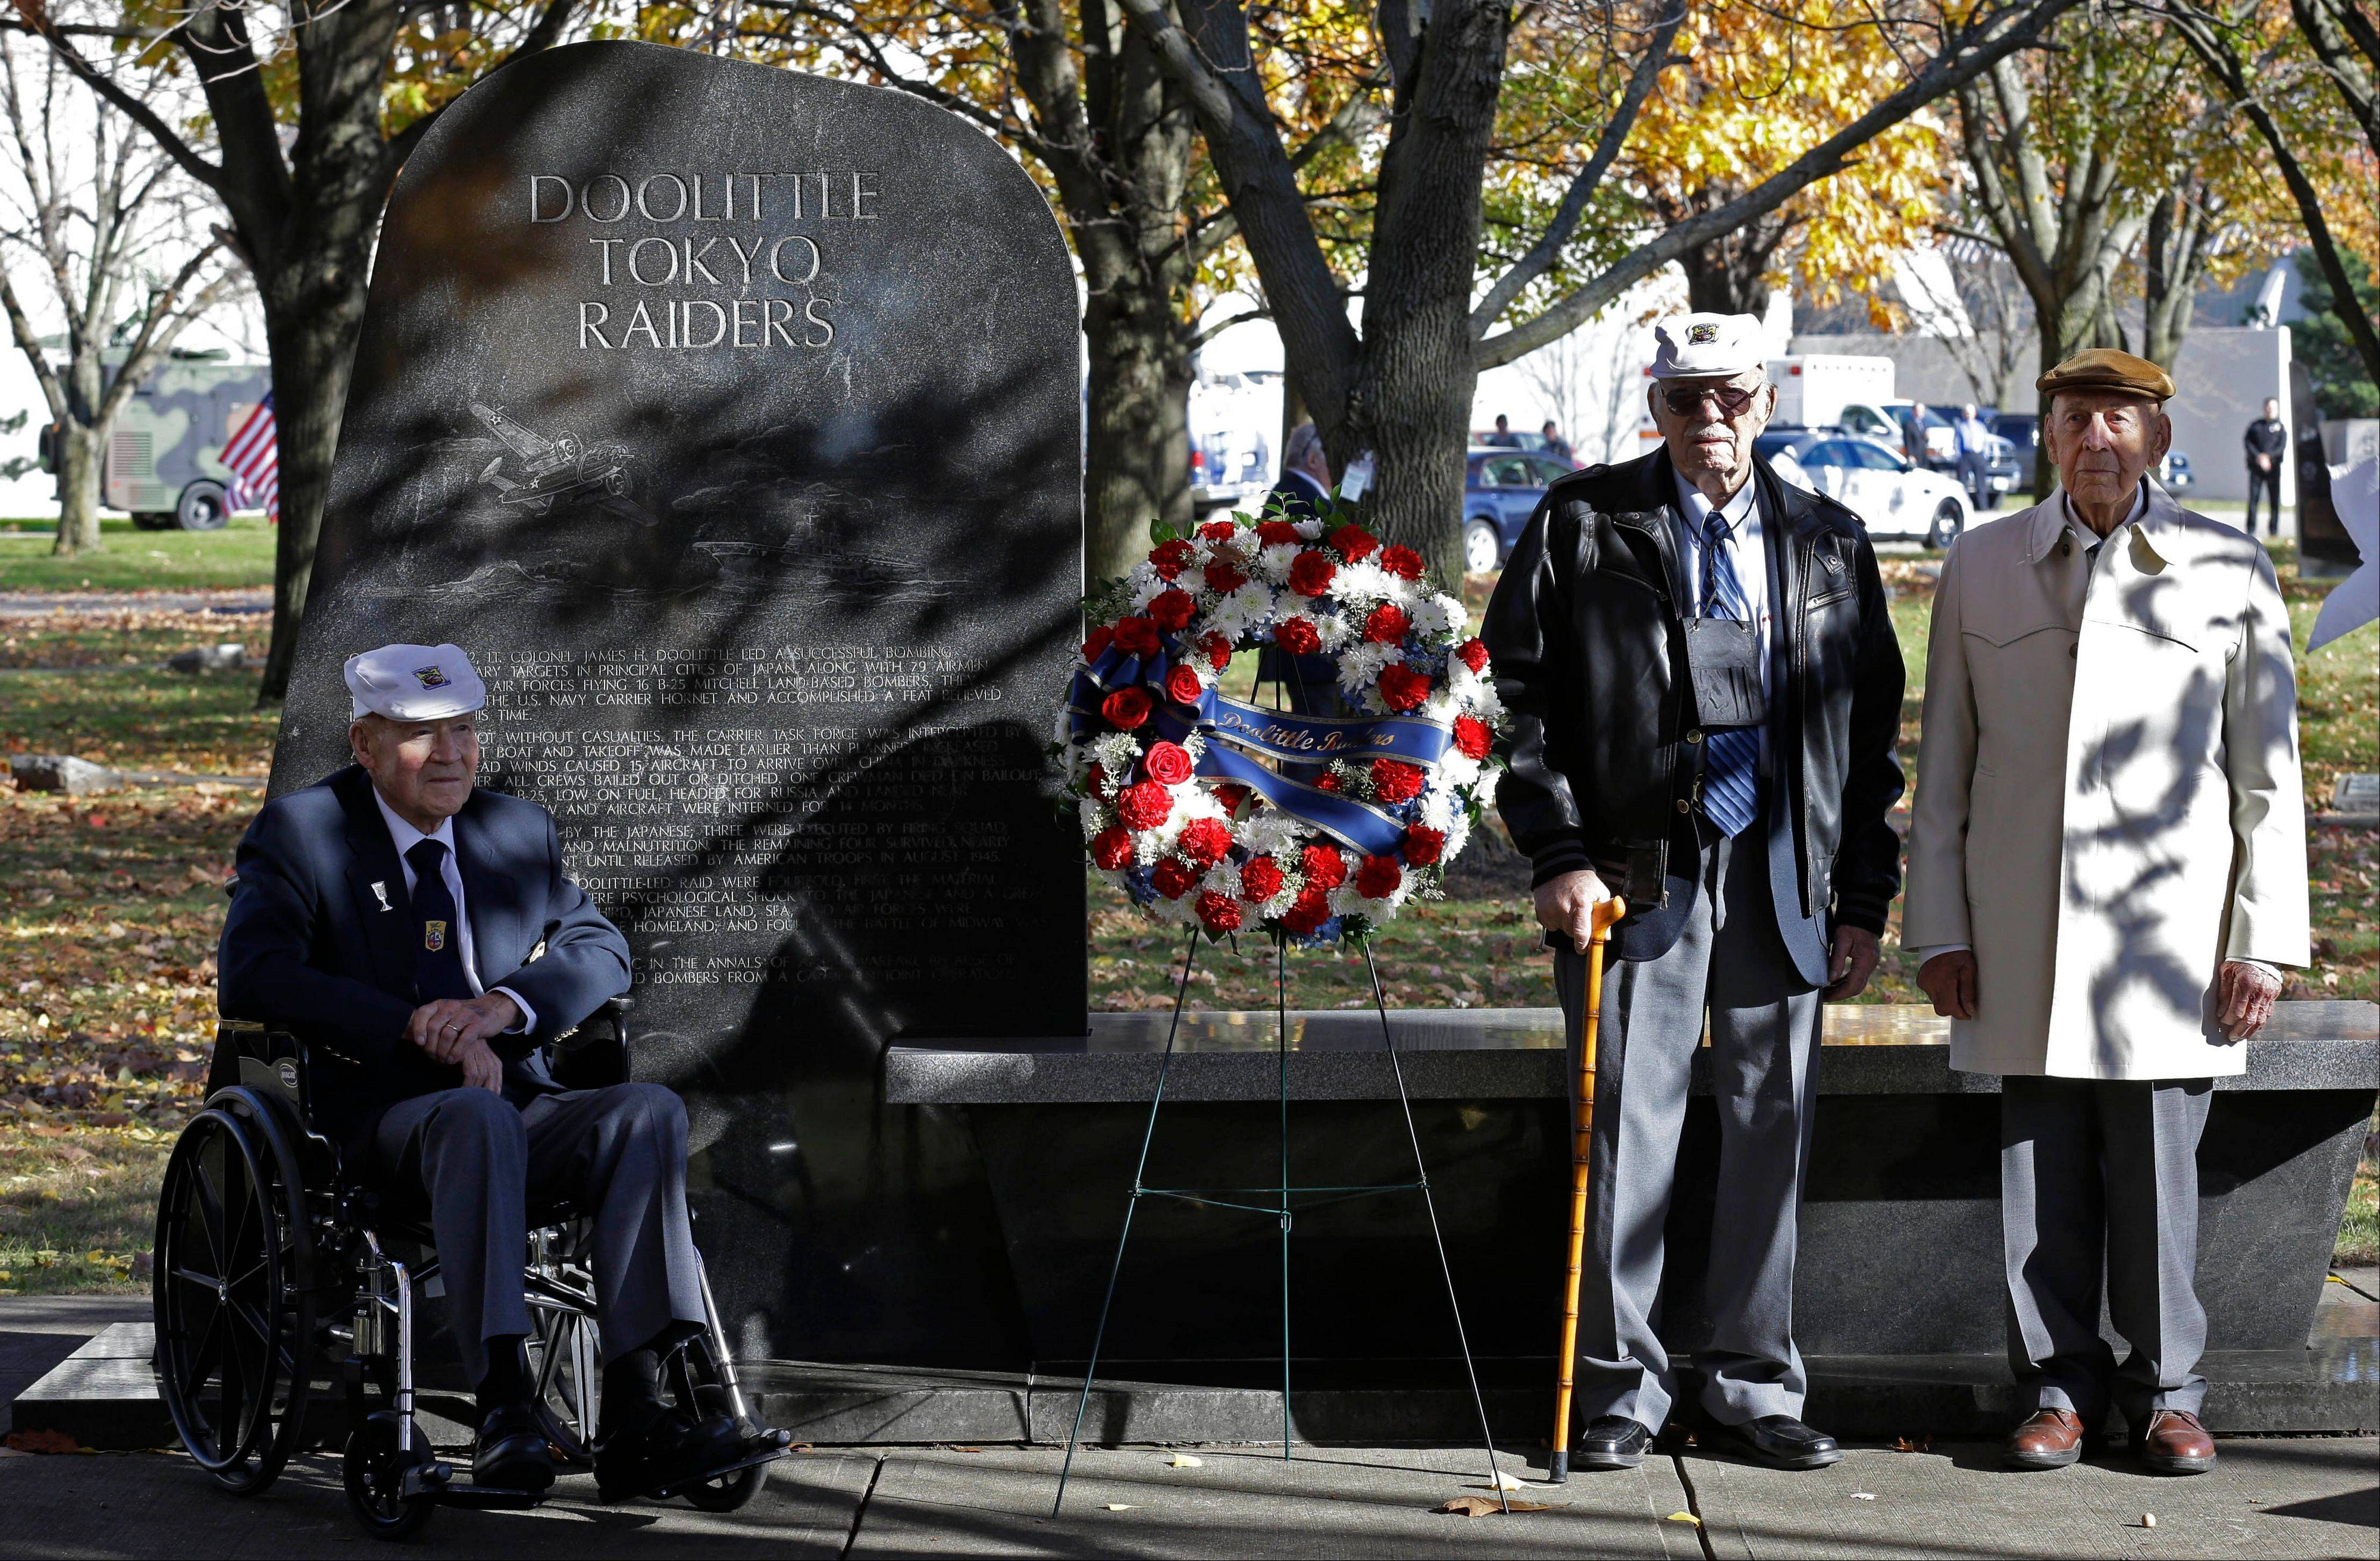 Three of the four surviving members of the 1942 Tokyo raid led by Lt. Col. Jimmy Doolittle, left to right, David Thatcher, Edward Saylor, and Richard Cole, pose Saturday next to a monument marking the raid.